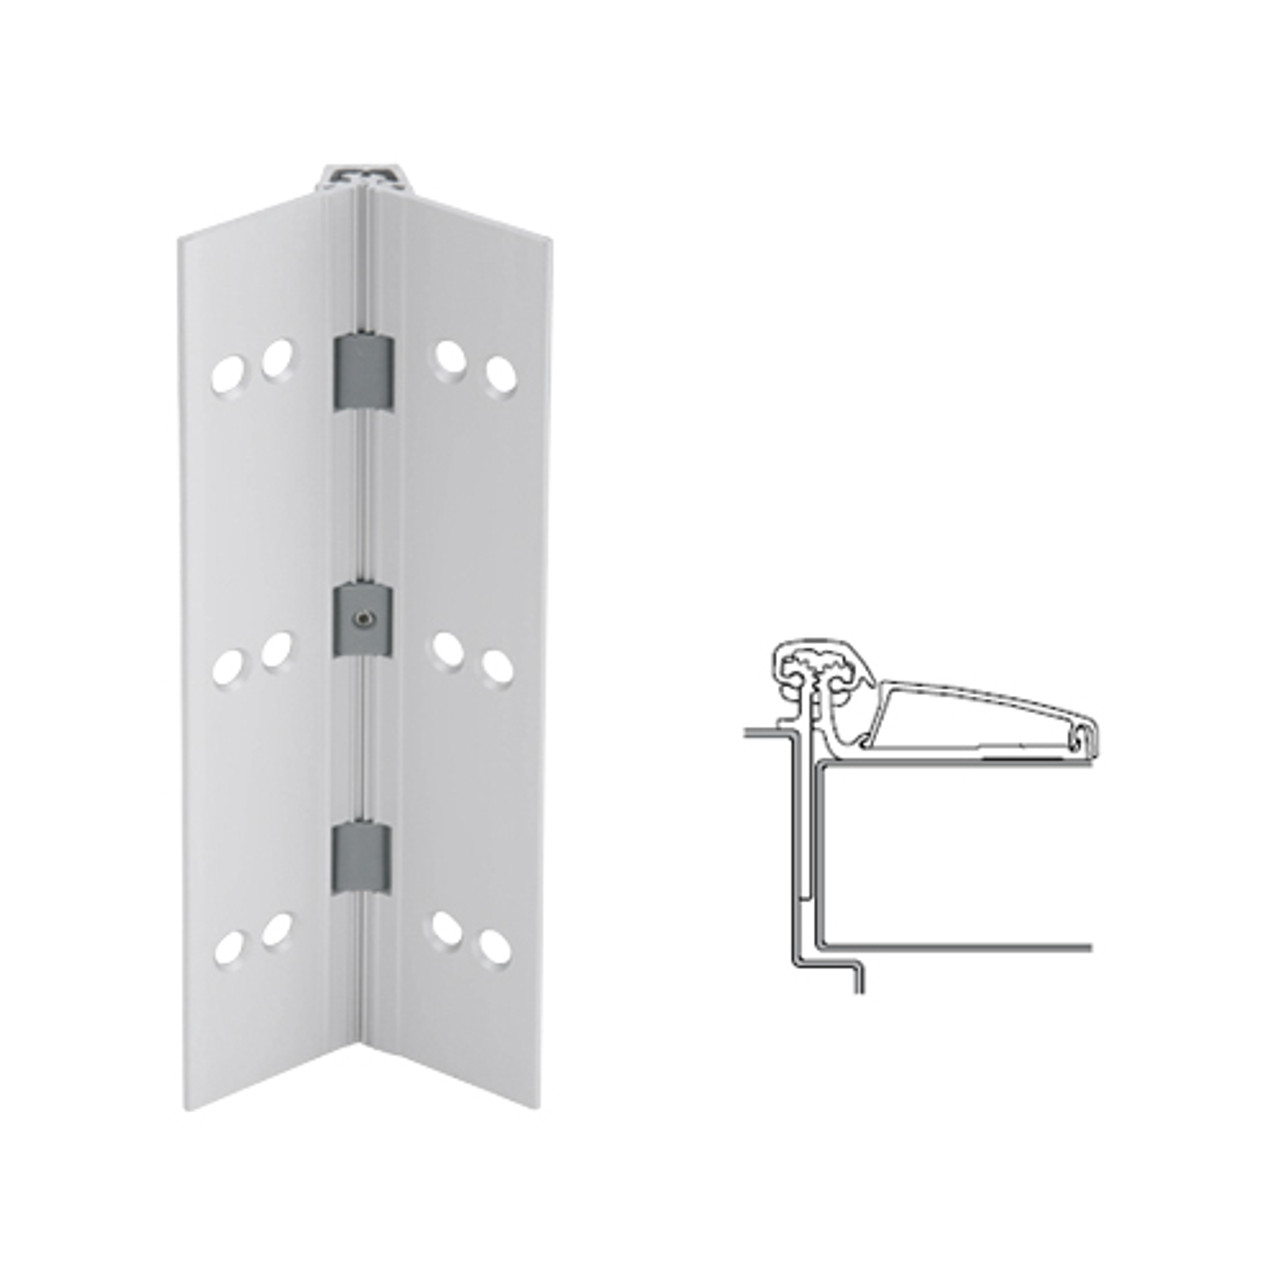 045XY-US28-83-SECHM IVES Adjustable Half Surface Continuous Geared Hinges with Security Screws - Hex Pin Drive in Satin Aluminum